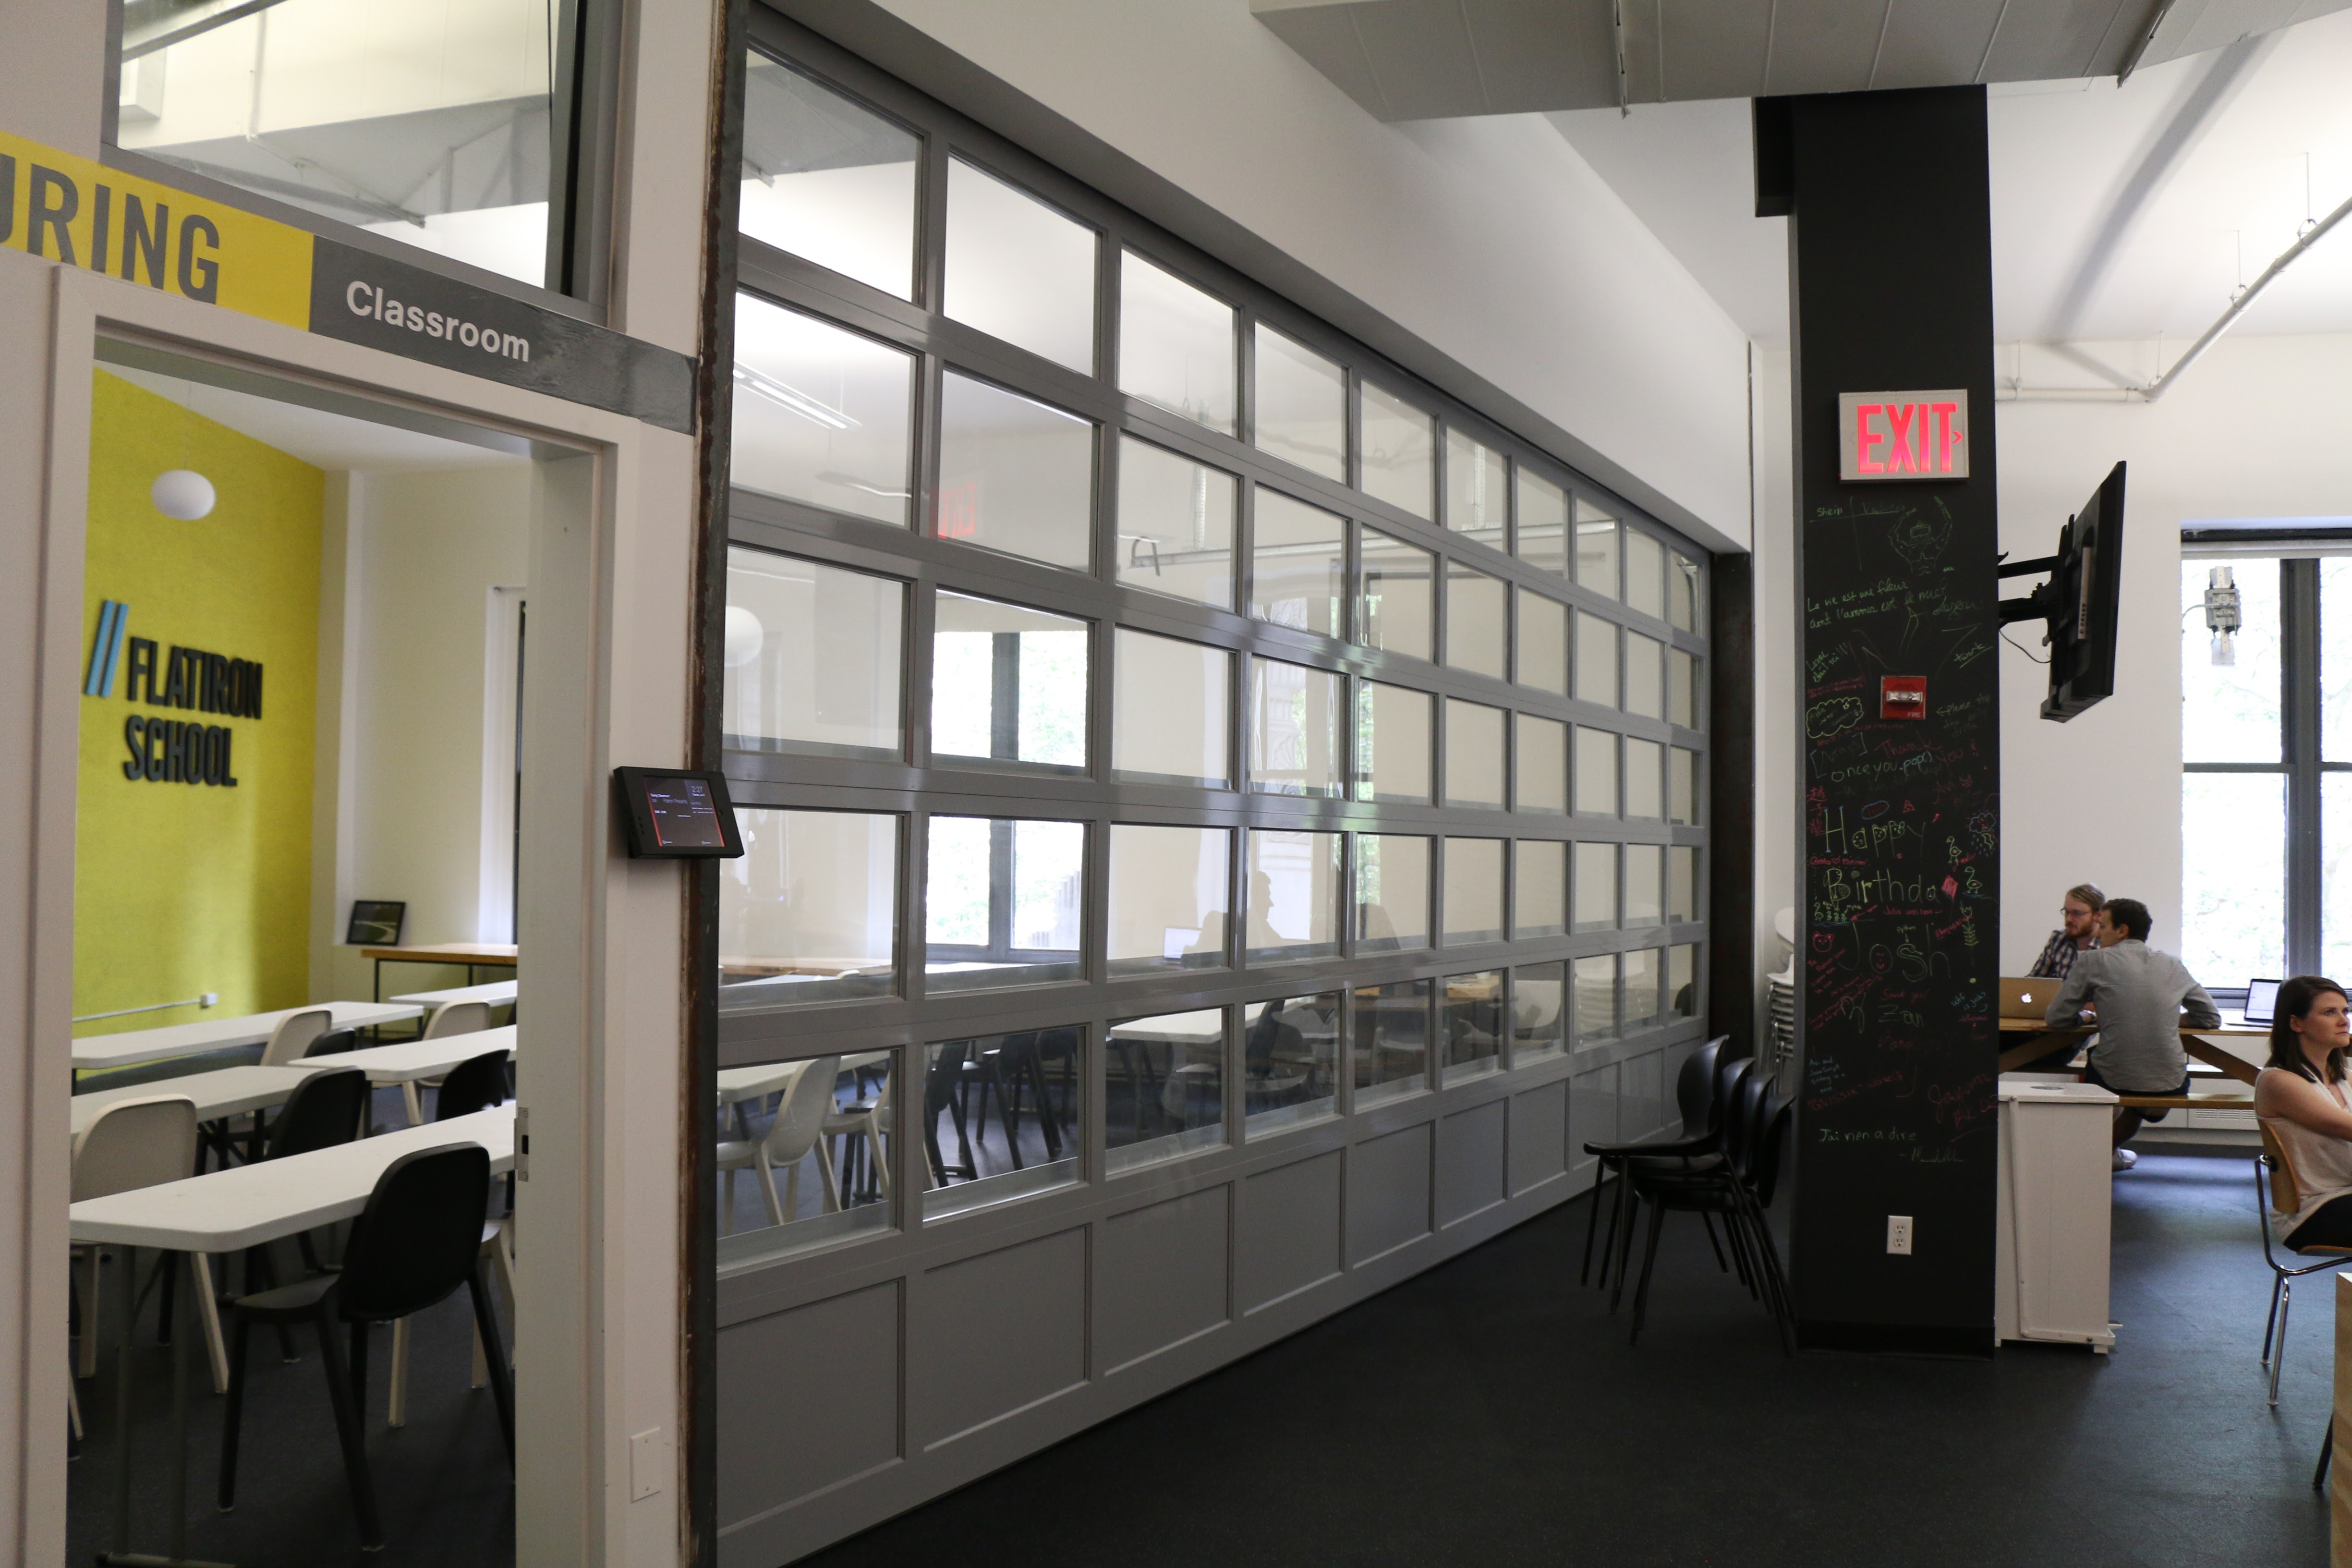 Conference-Room-Wall-Divider-Glass-Rollup-Garage-Door-NYC-Flat-Iron-School.jpg